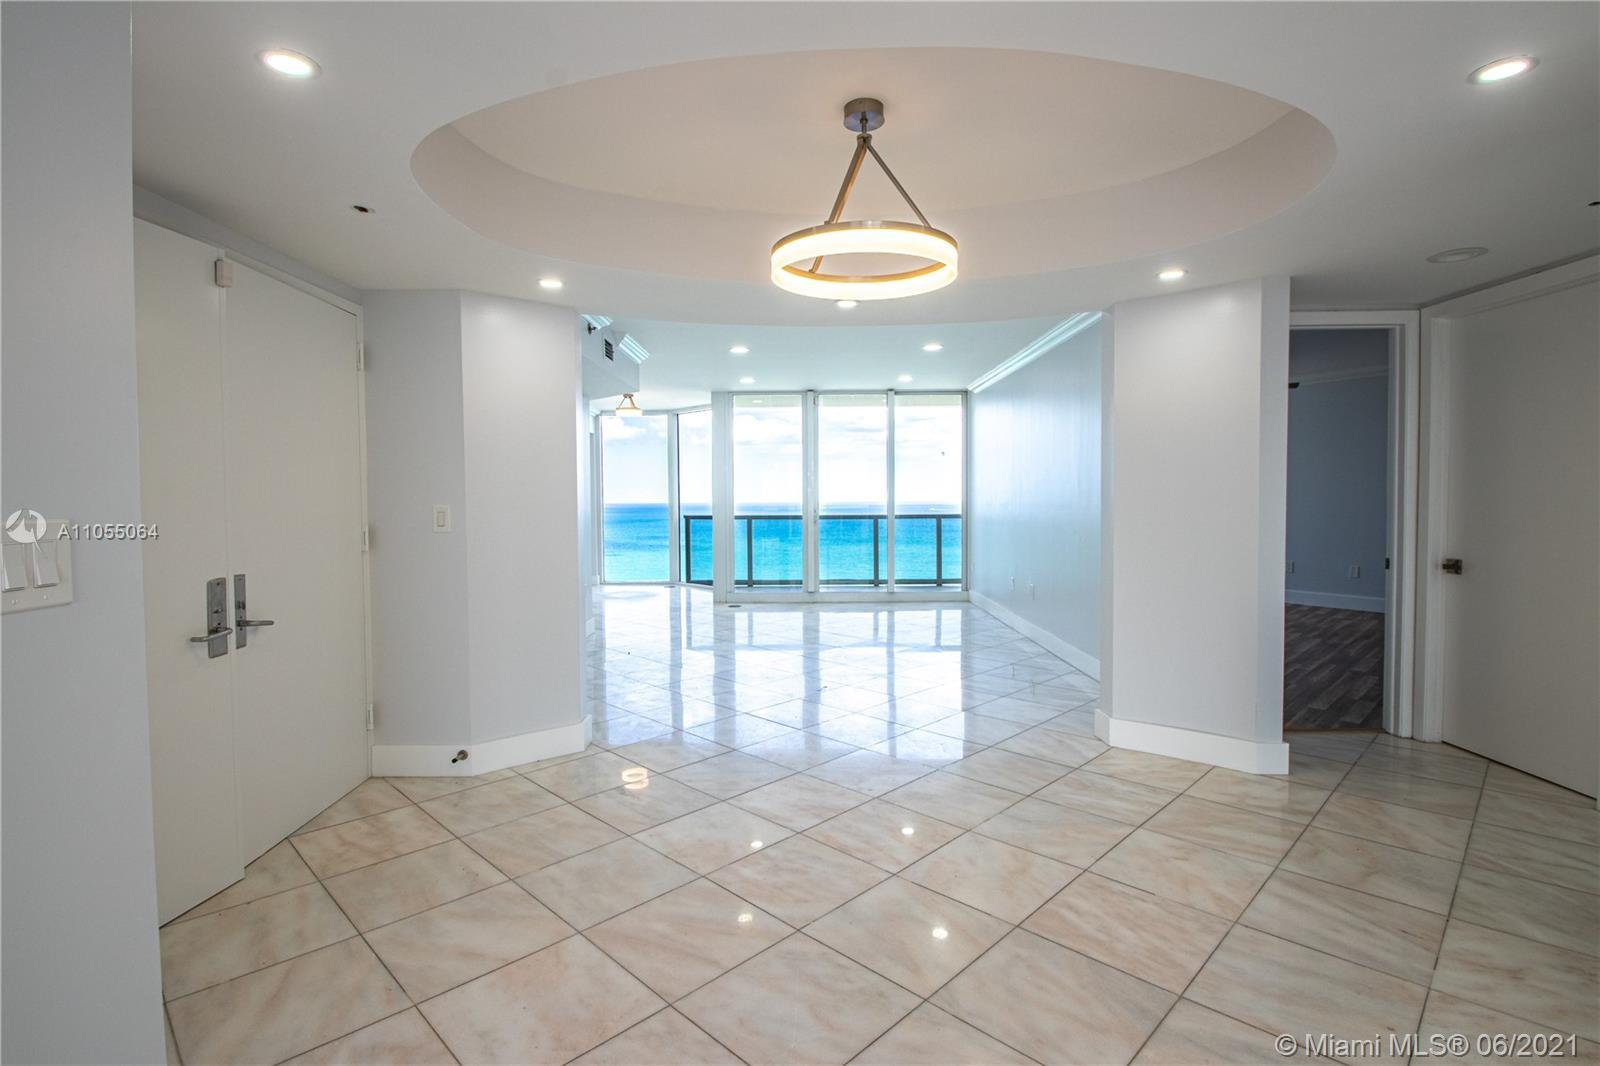 TWO STORY PENTHOUSE WITH 360 DEGREES VIEWS OF DIRECT OCEAN AND INTERCOASTAL WATERWAYS. UNIT FEATURES